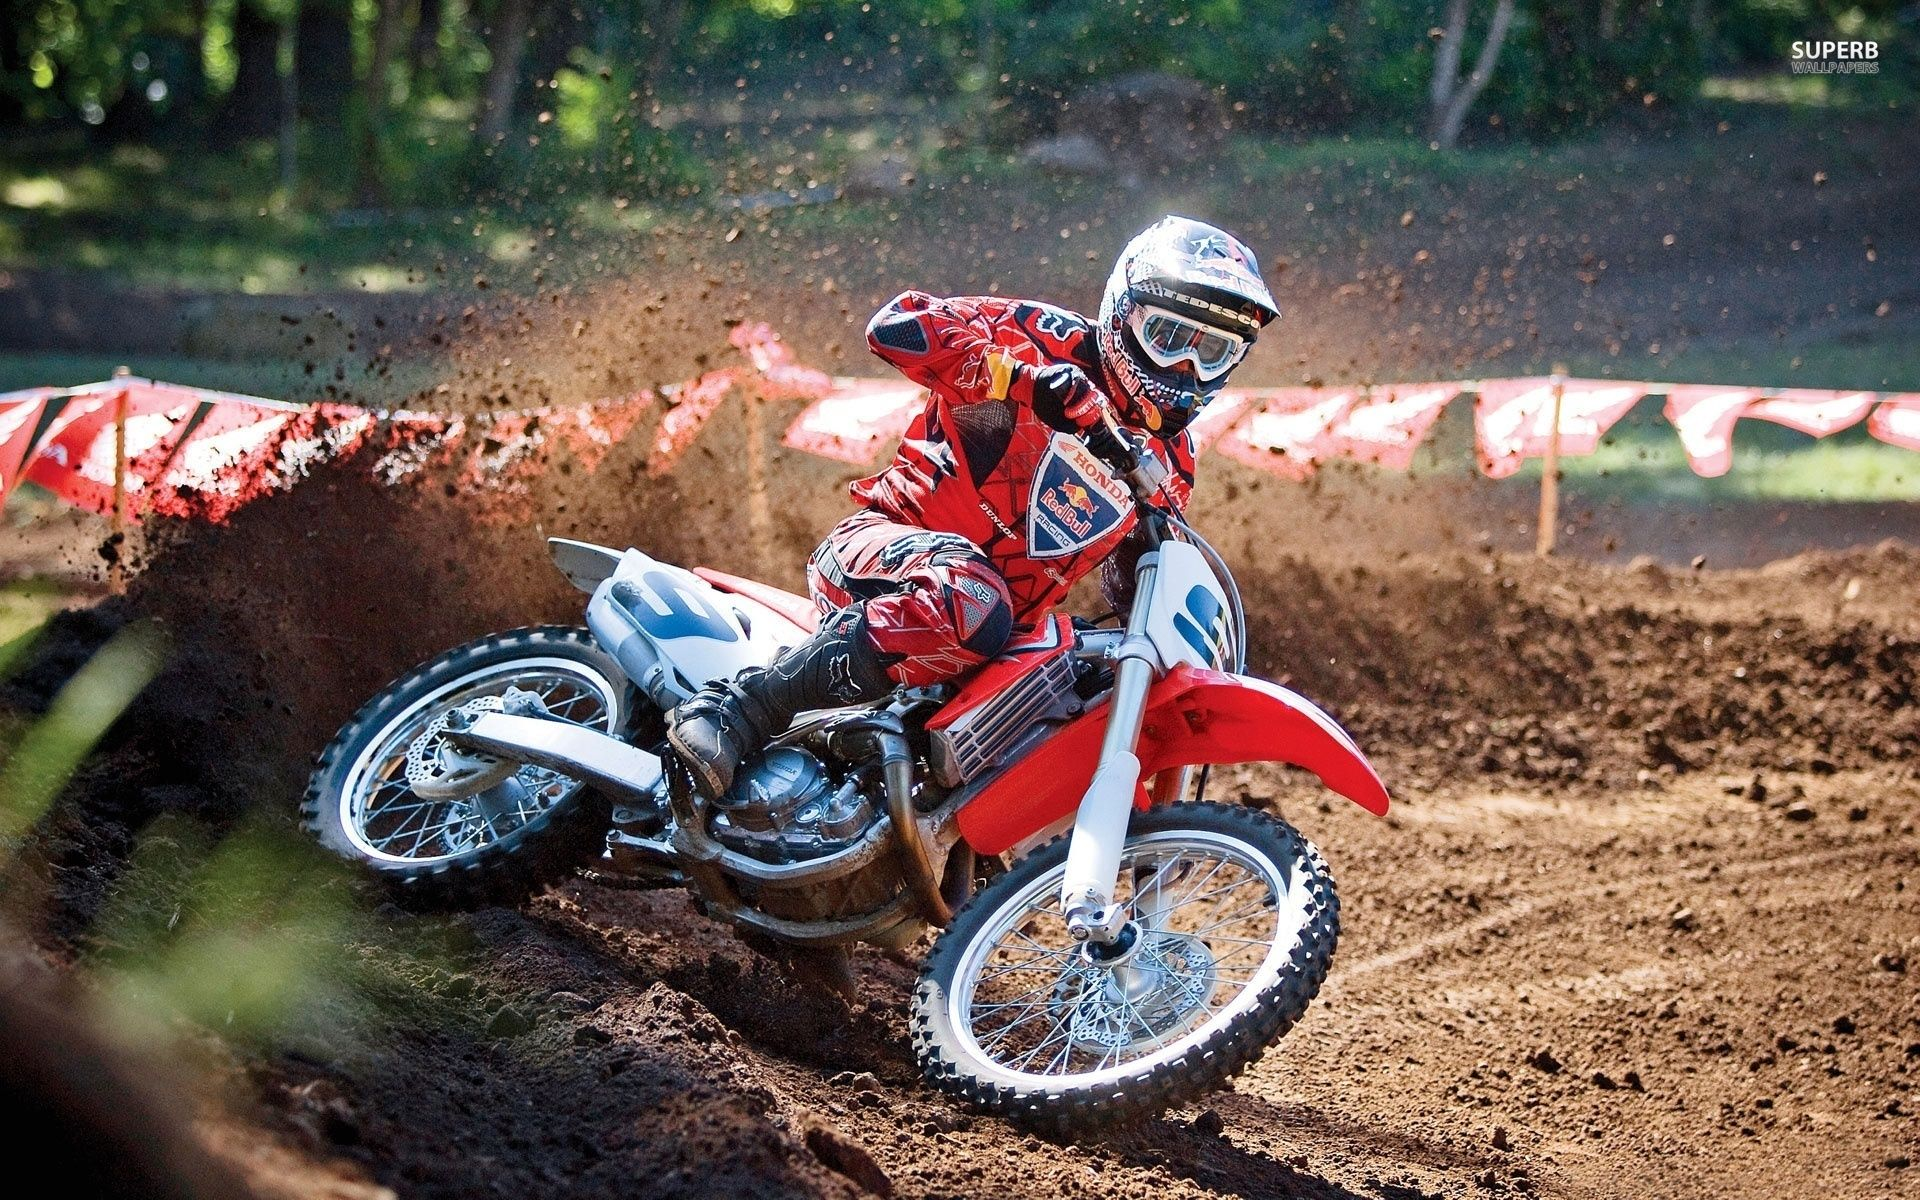 Honda CRF450R HD Wallpapers Find Best Latest Honda CRF450R